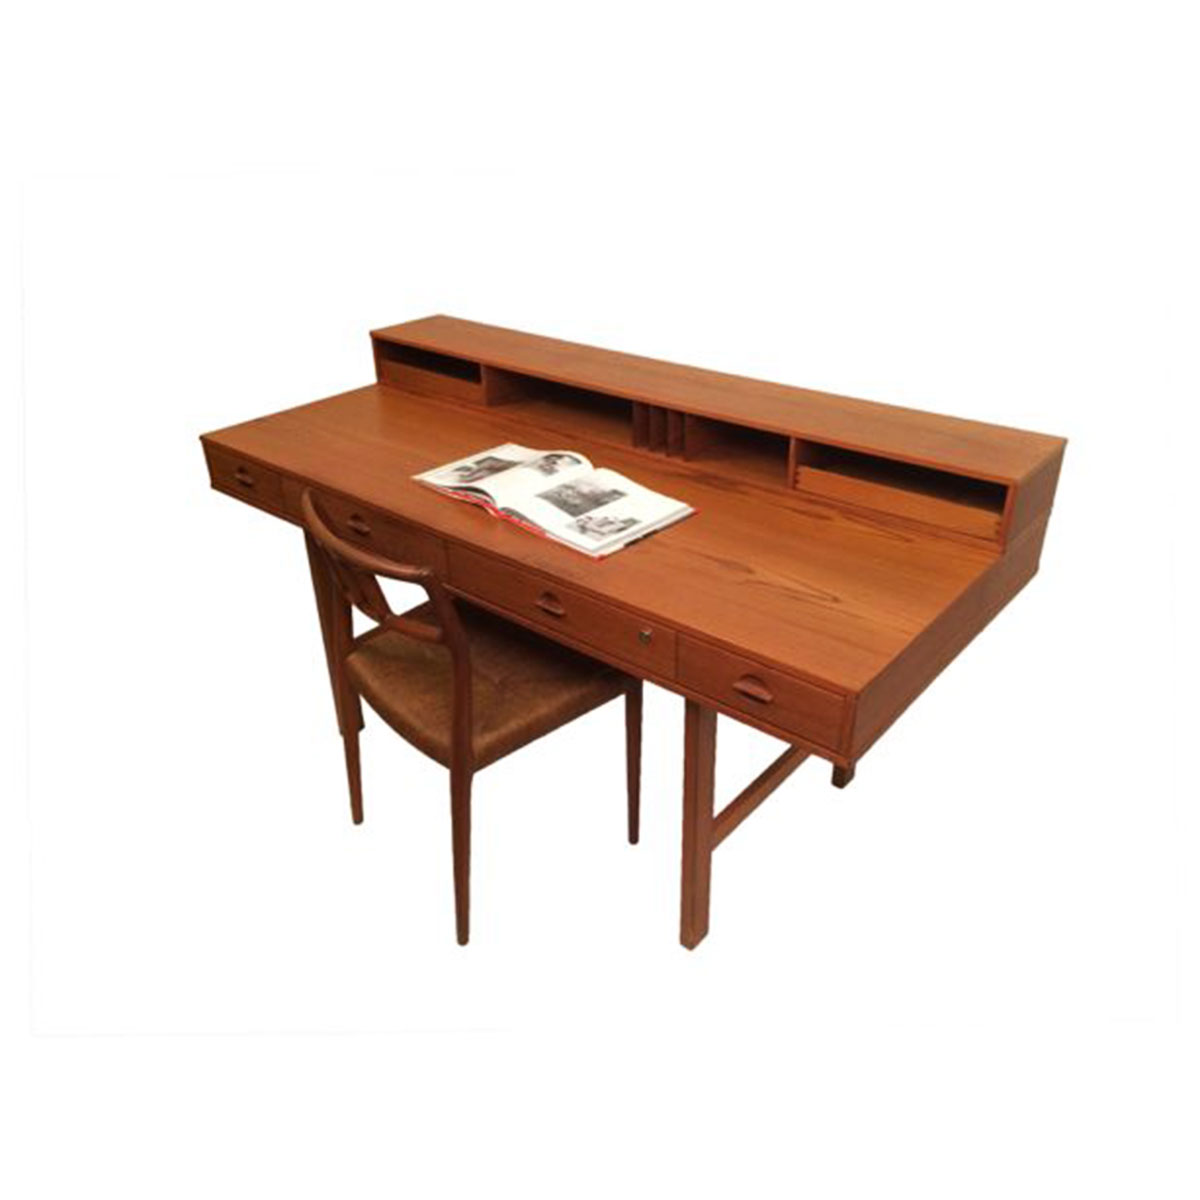 1975 Lovig 'Flip-Top' Danish Modern Teak Partner's Desk